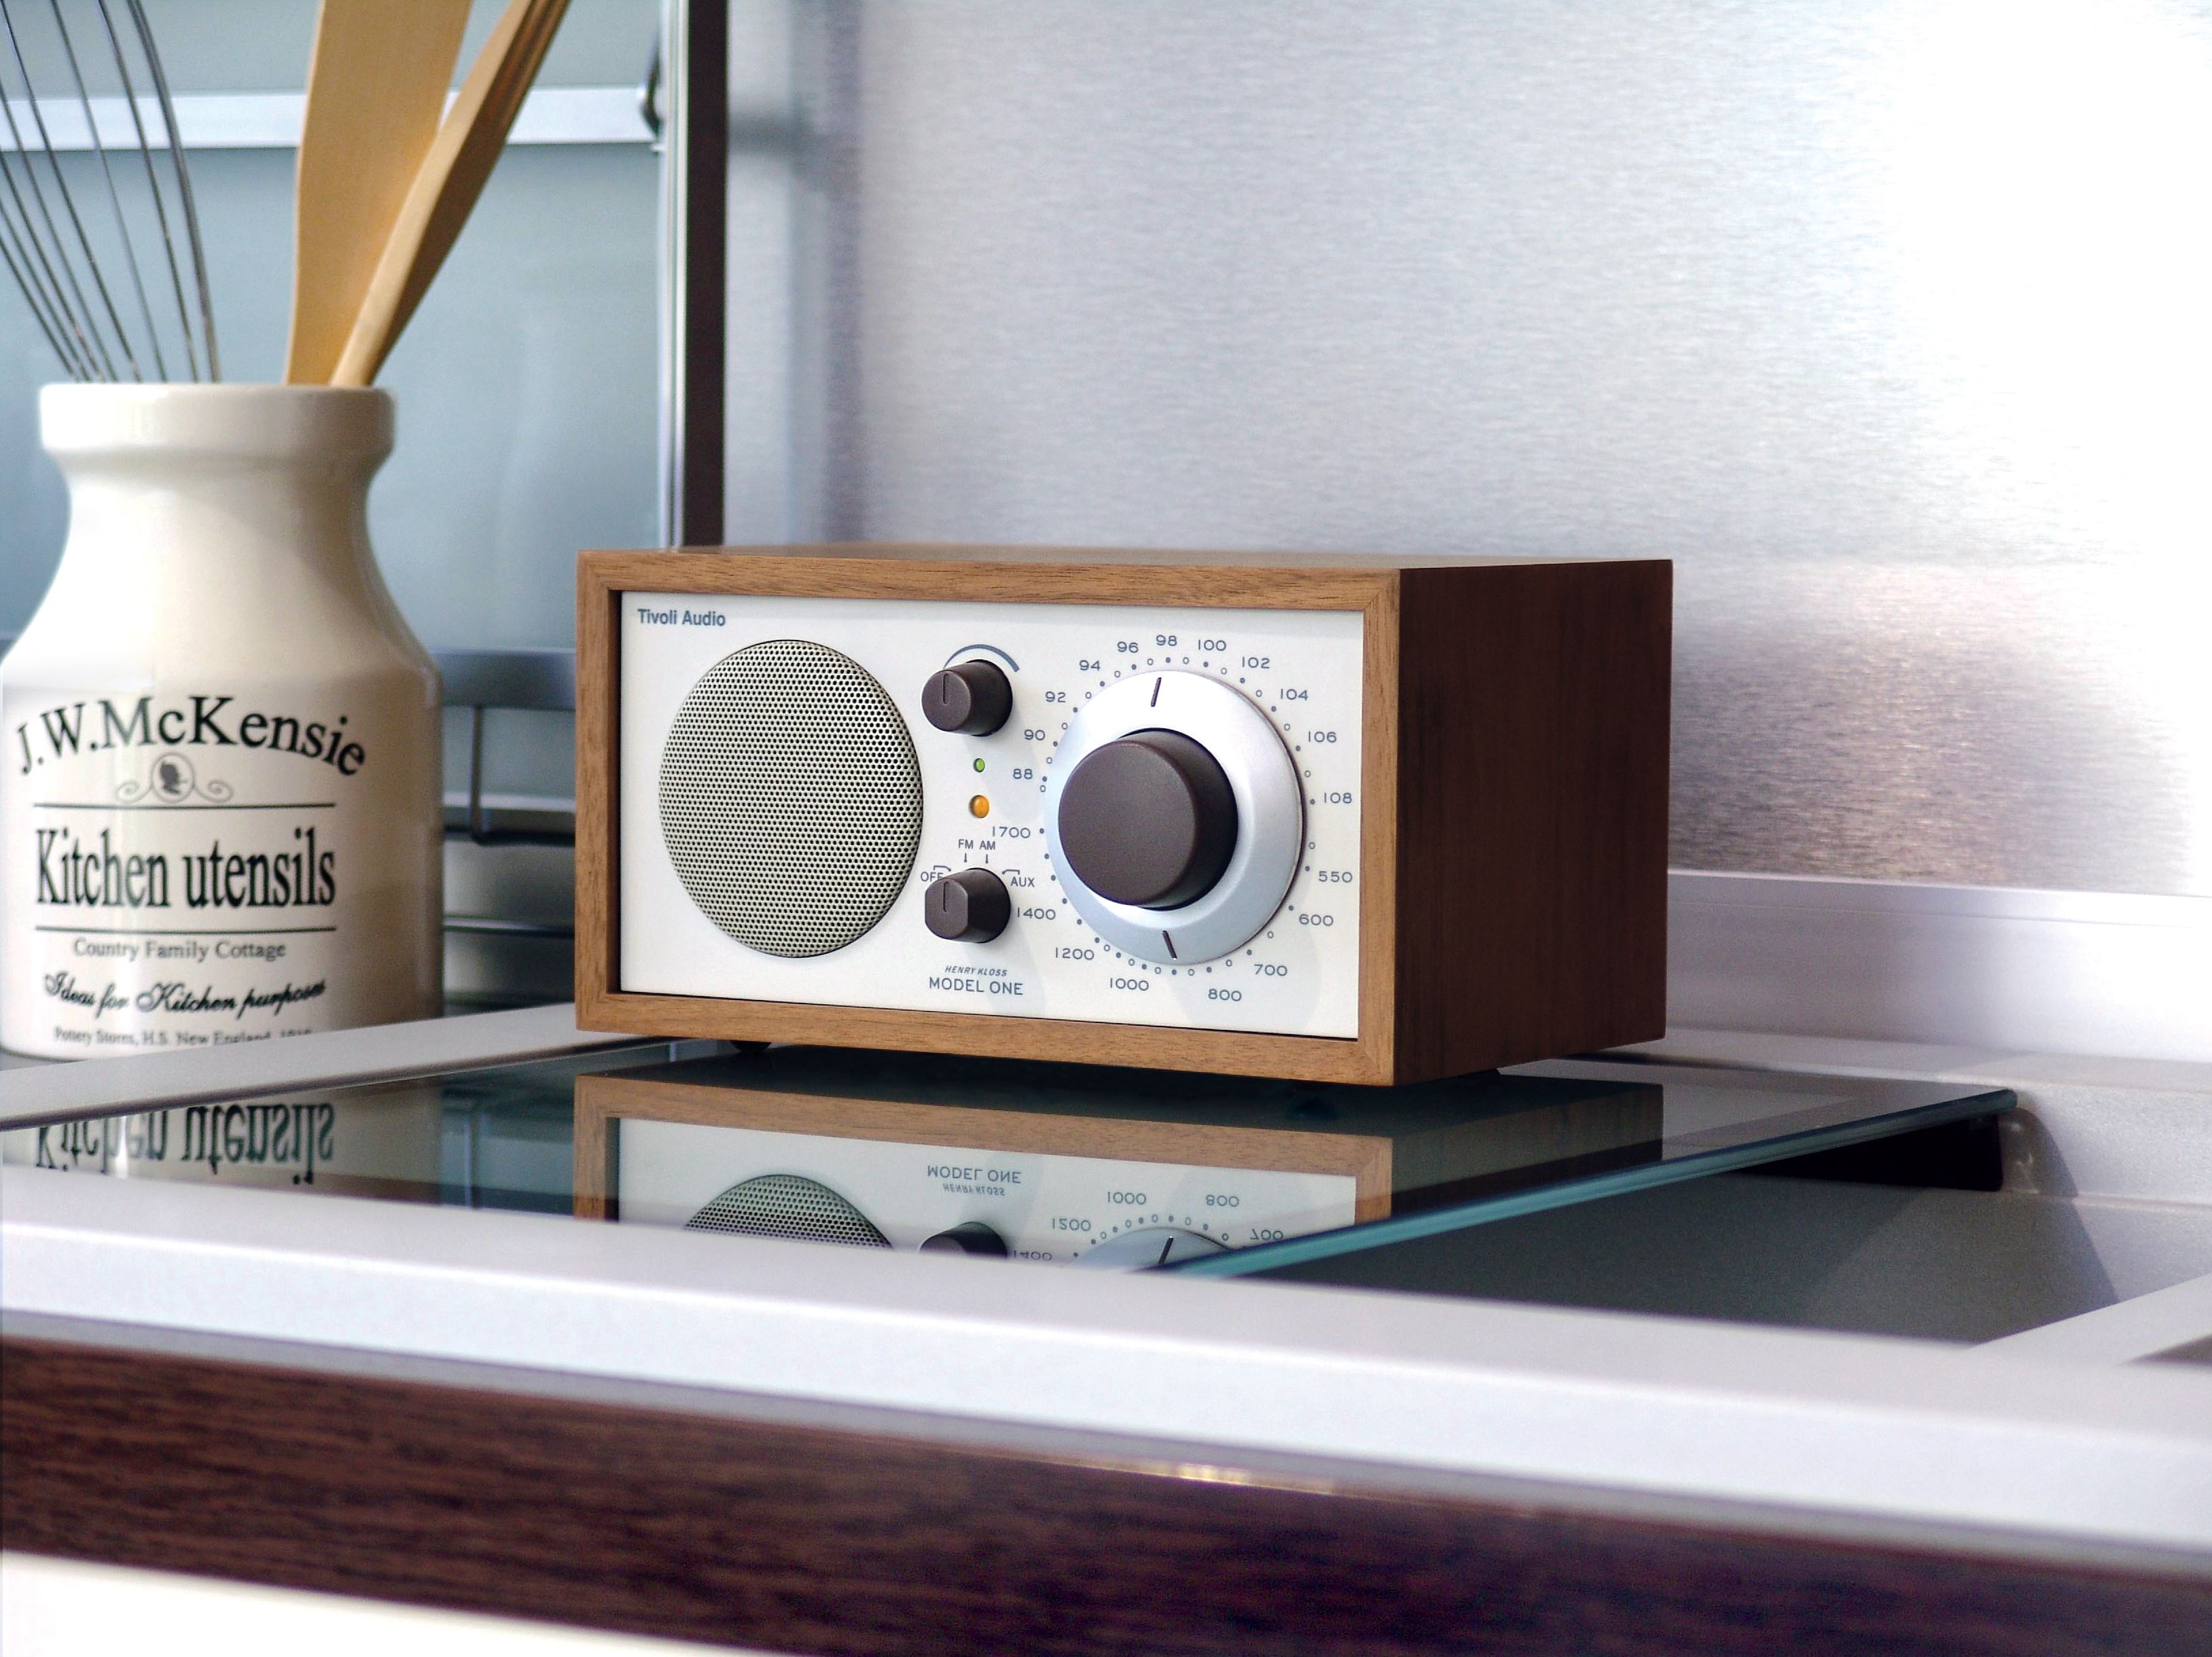 Tivoli Audio Model One Istruzioni The Tivoli Audio Model One Radio Makes A Perfect Kitchen